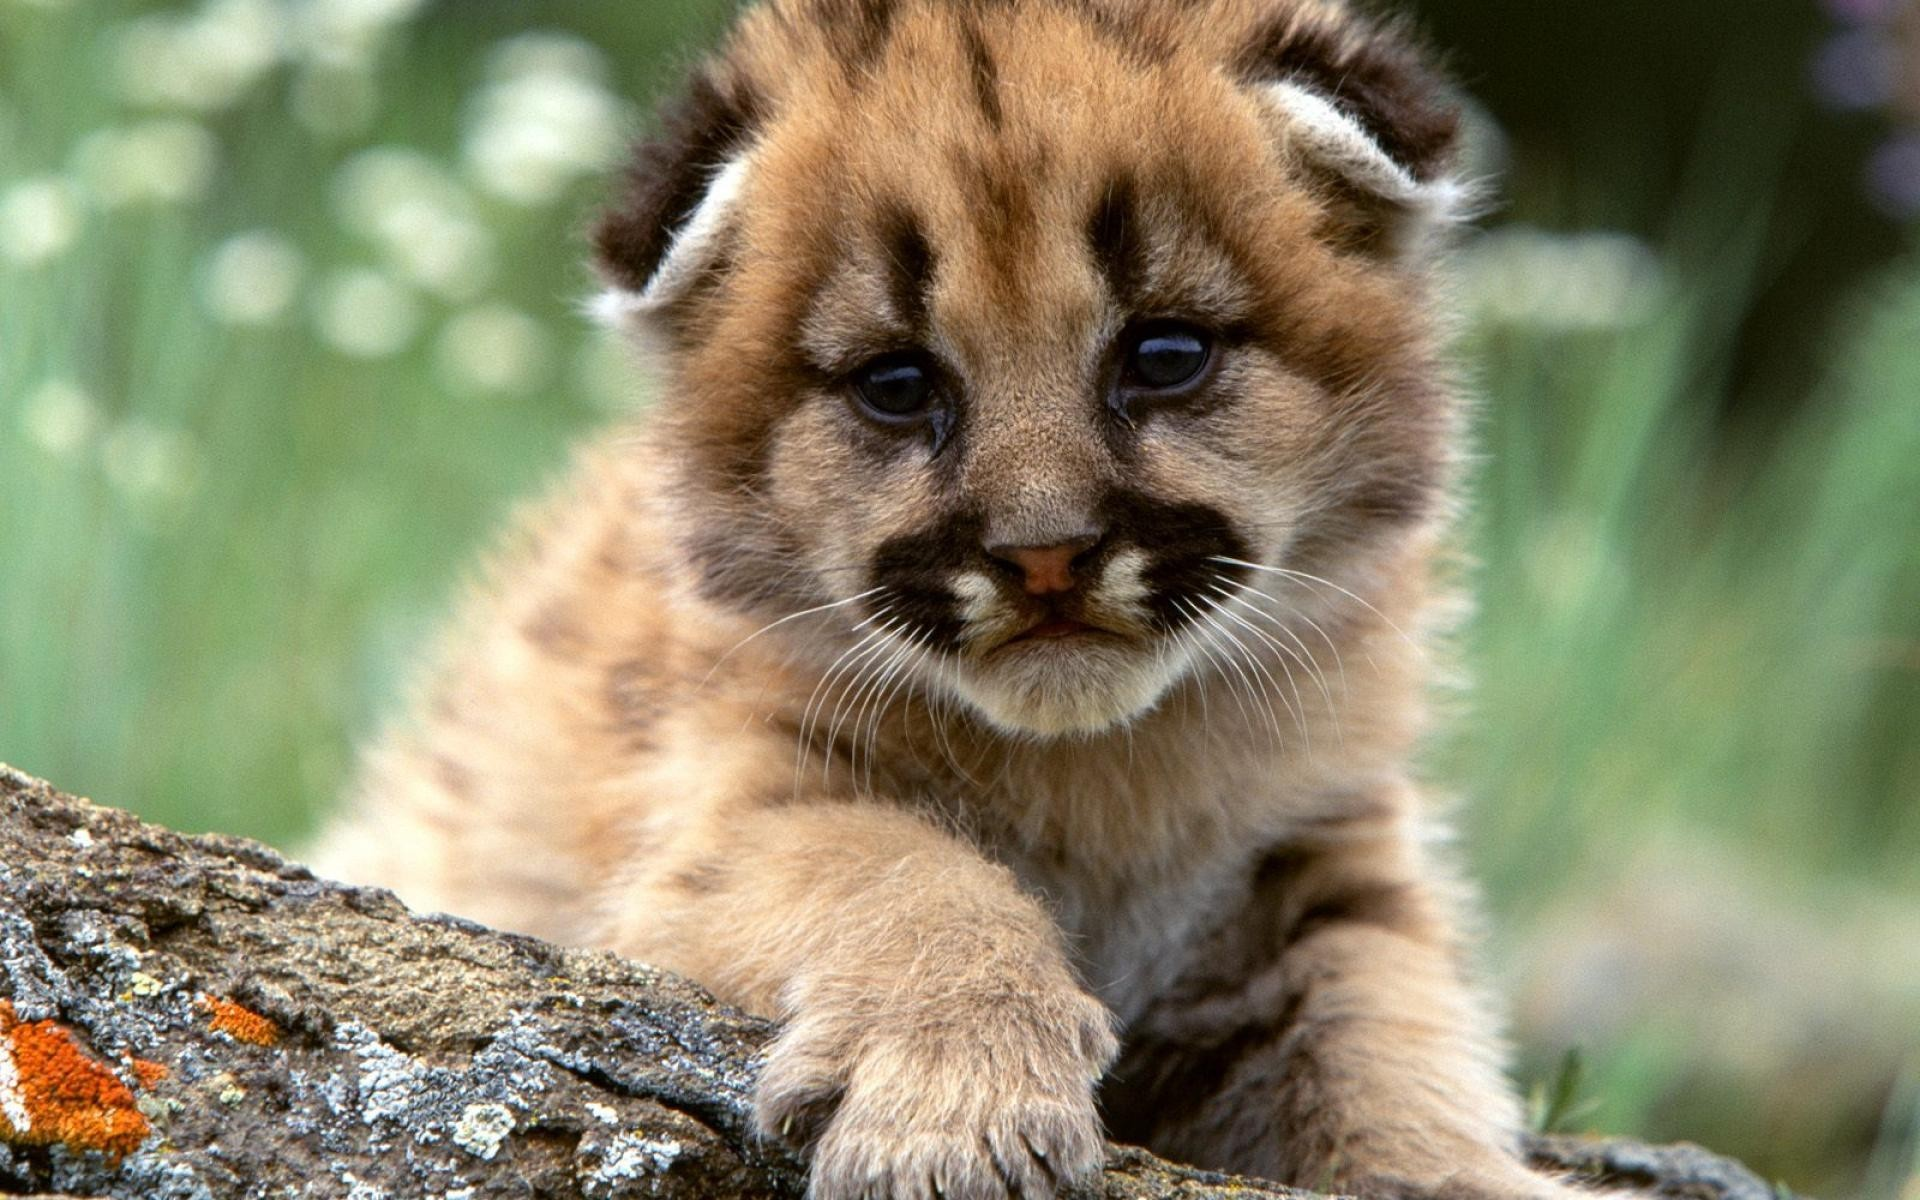 Cute lion cub wallpaper 1920x1200